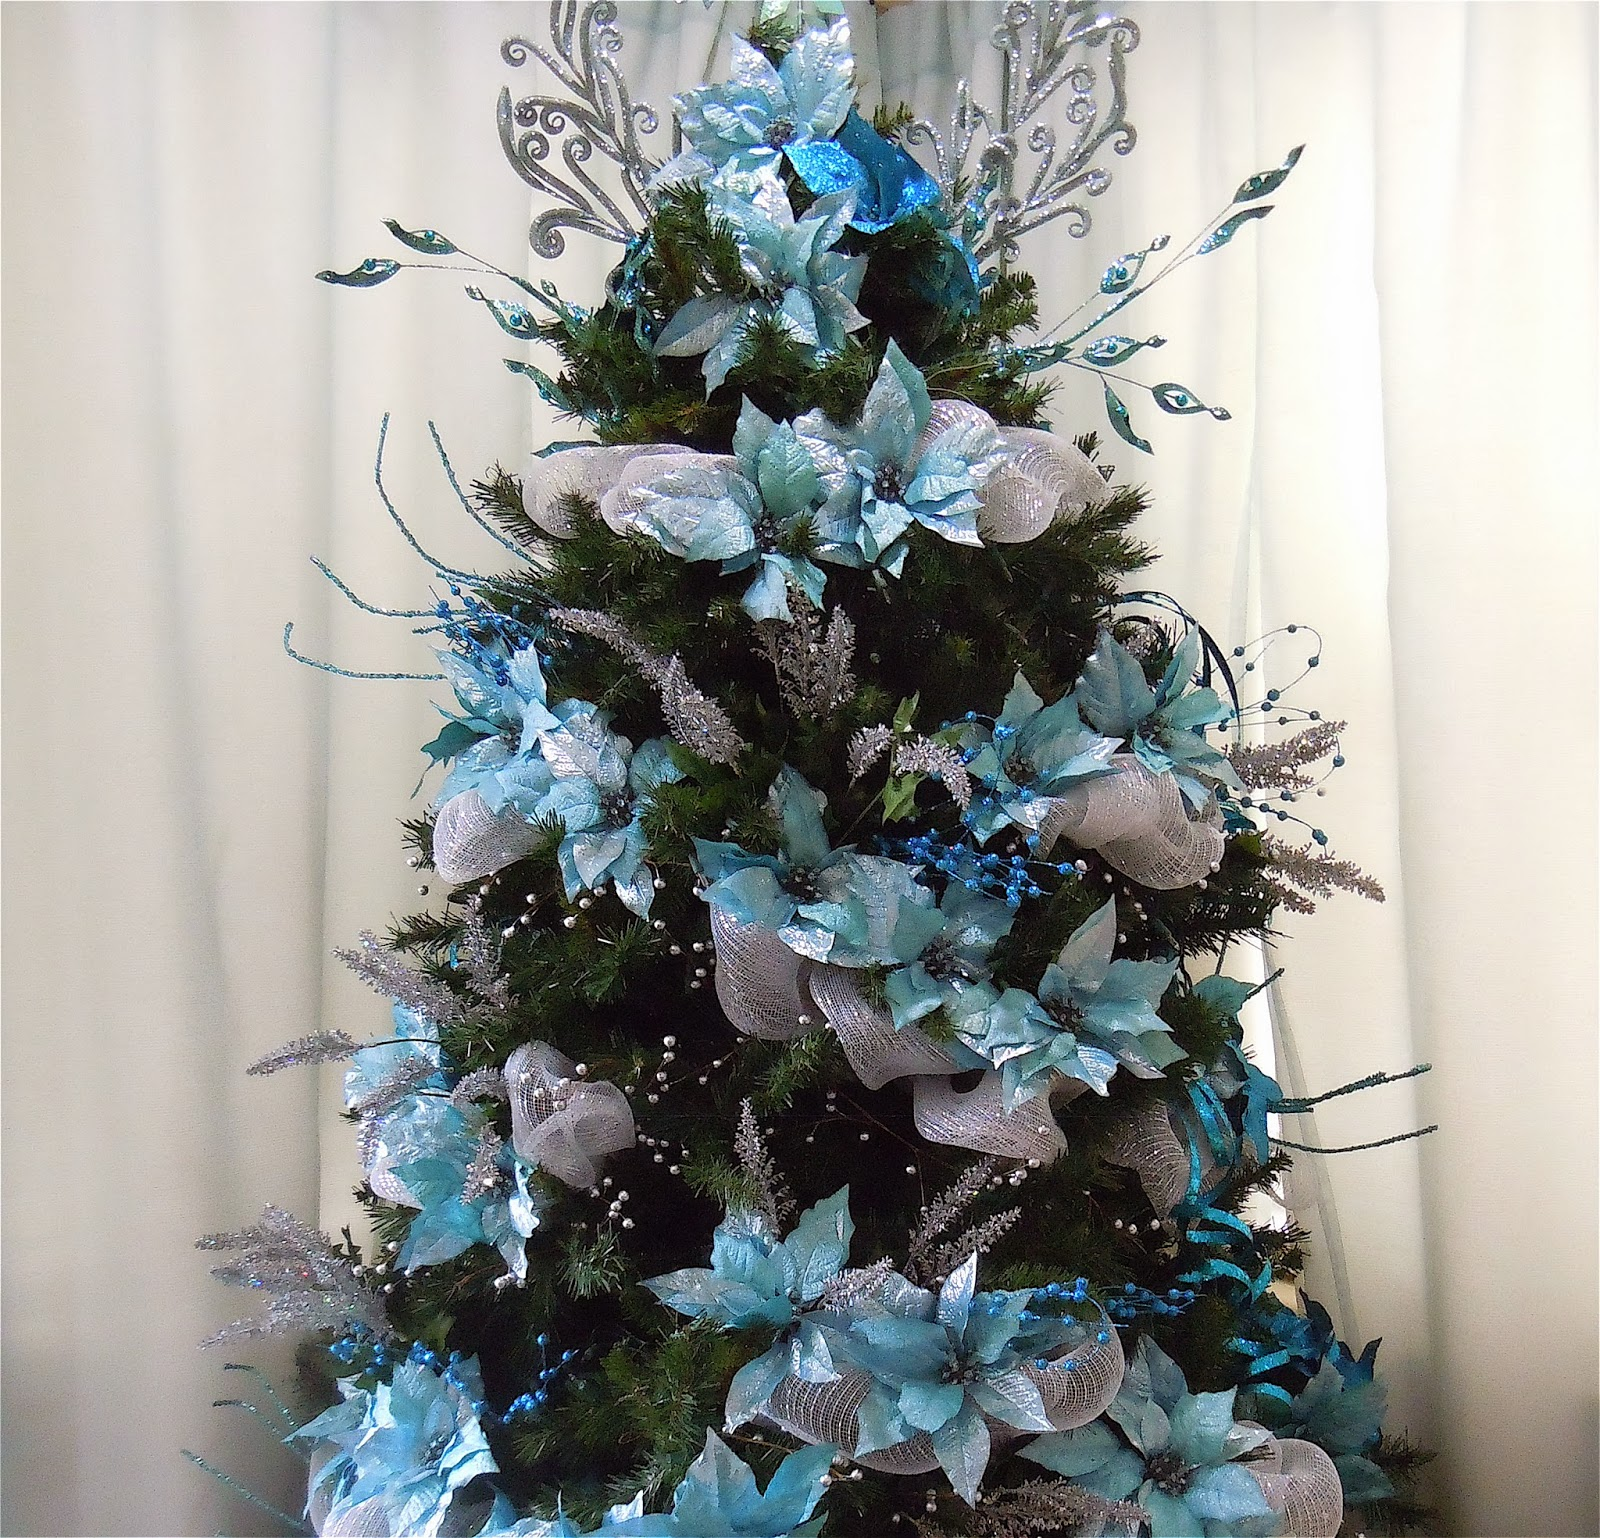 white christmas tree with blue and silver decorations photo4 - White Christmas Tree With Blue And Silver Decorations